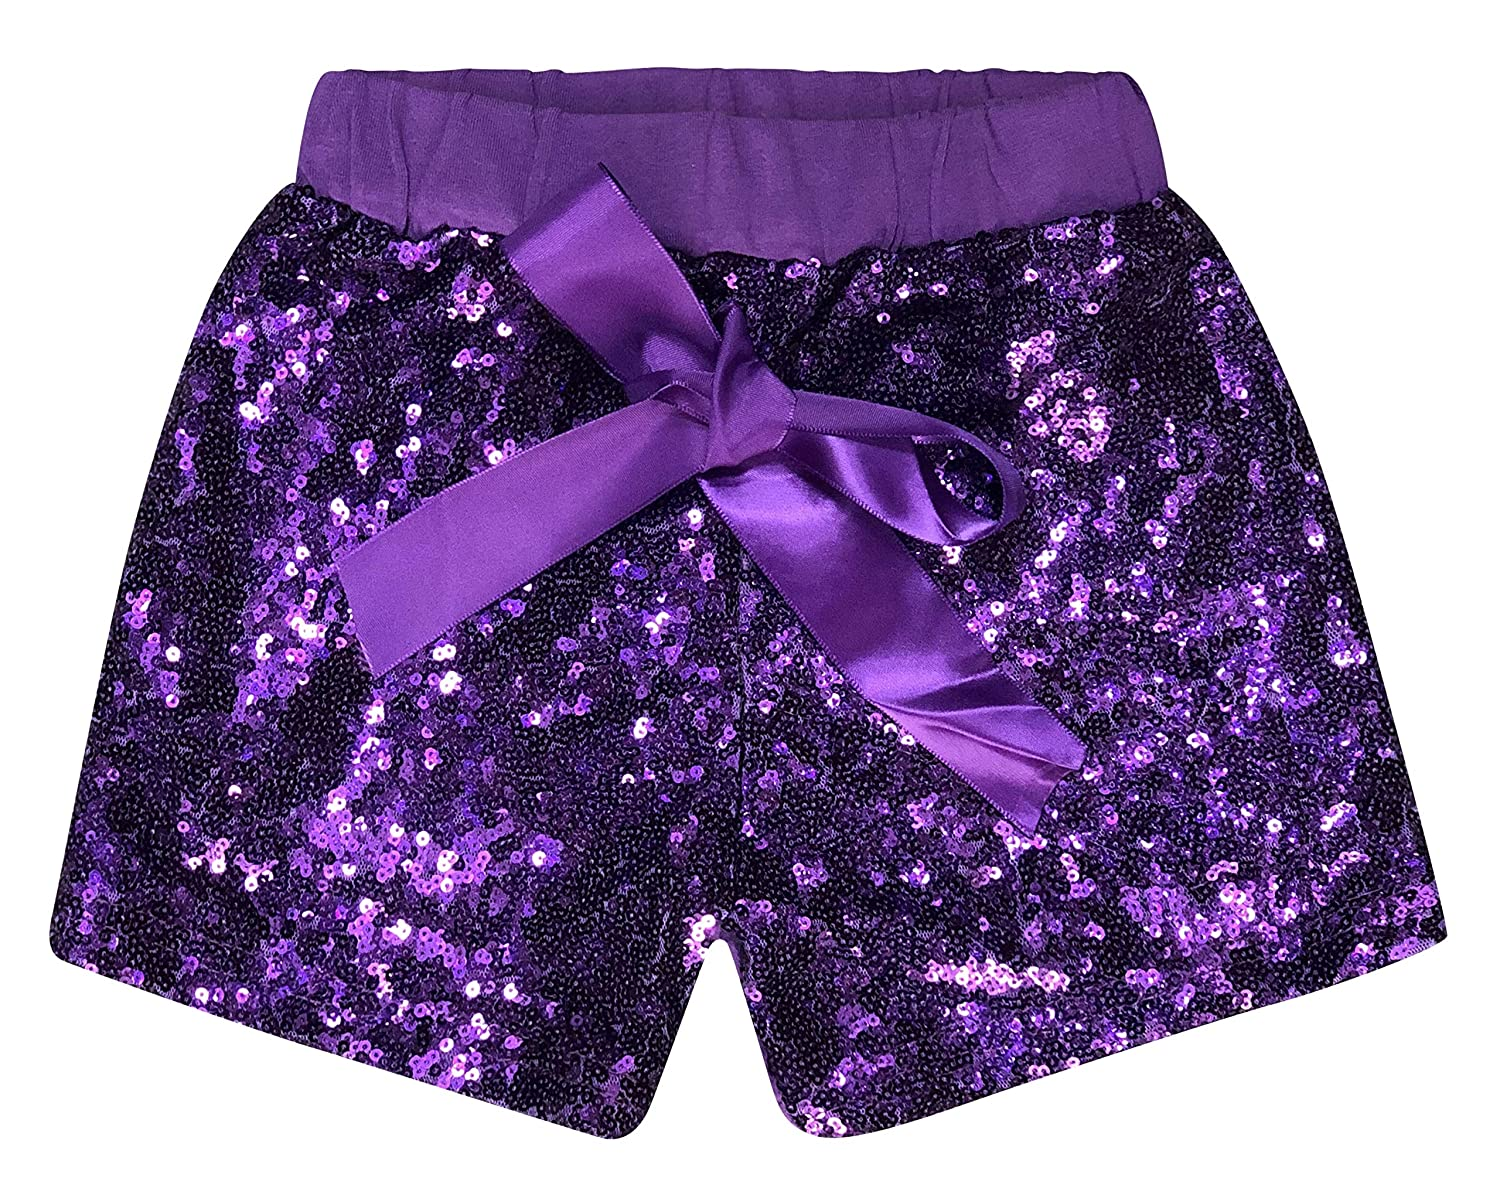 48143463a Amazon.com: ILTEX Baby Girls Short Sequin Pants Bottoms with Bow Toddler:  Clothing